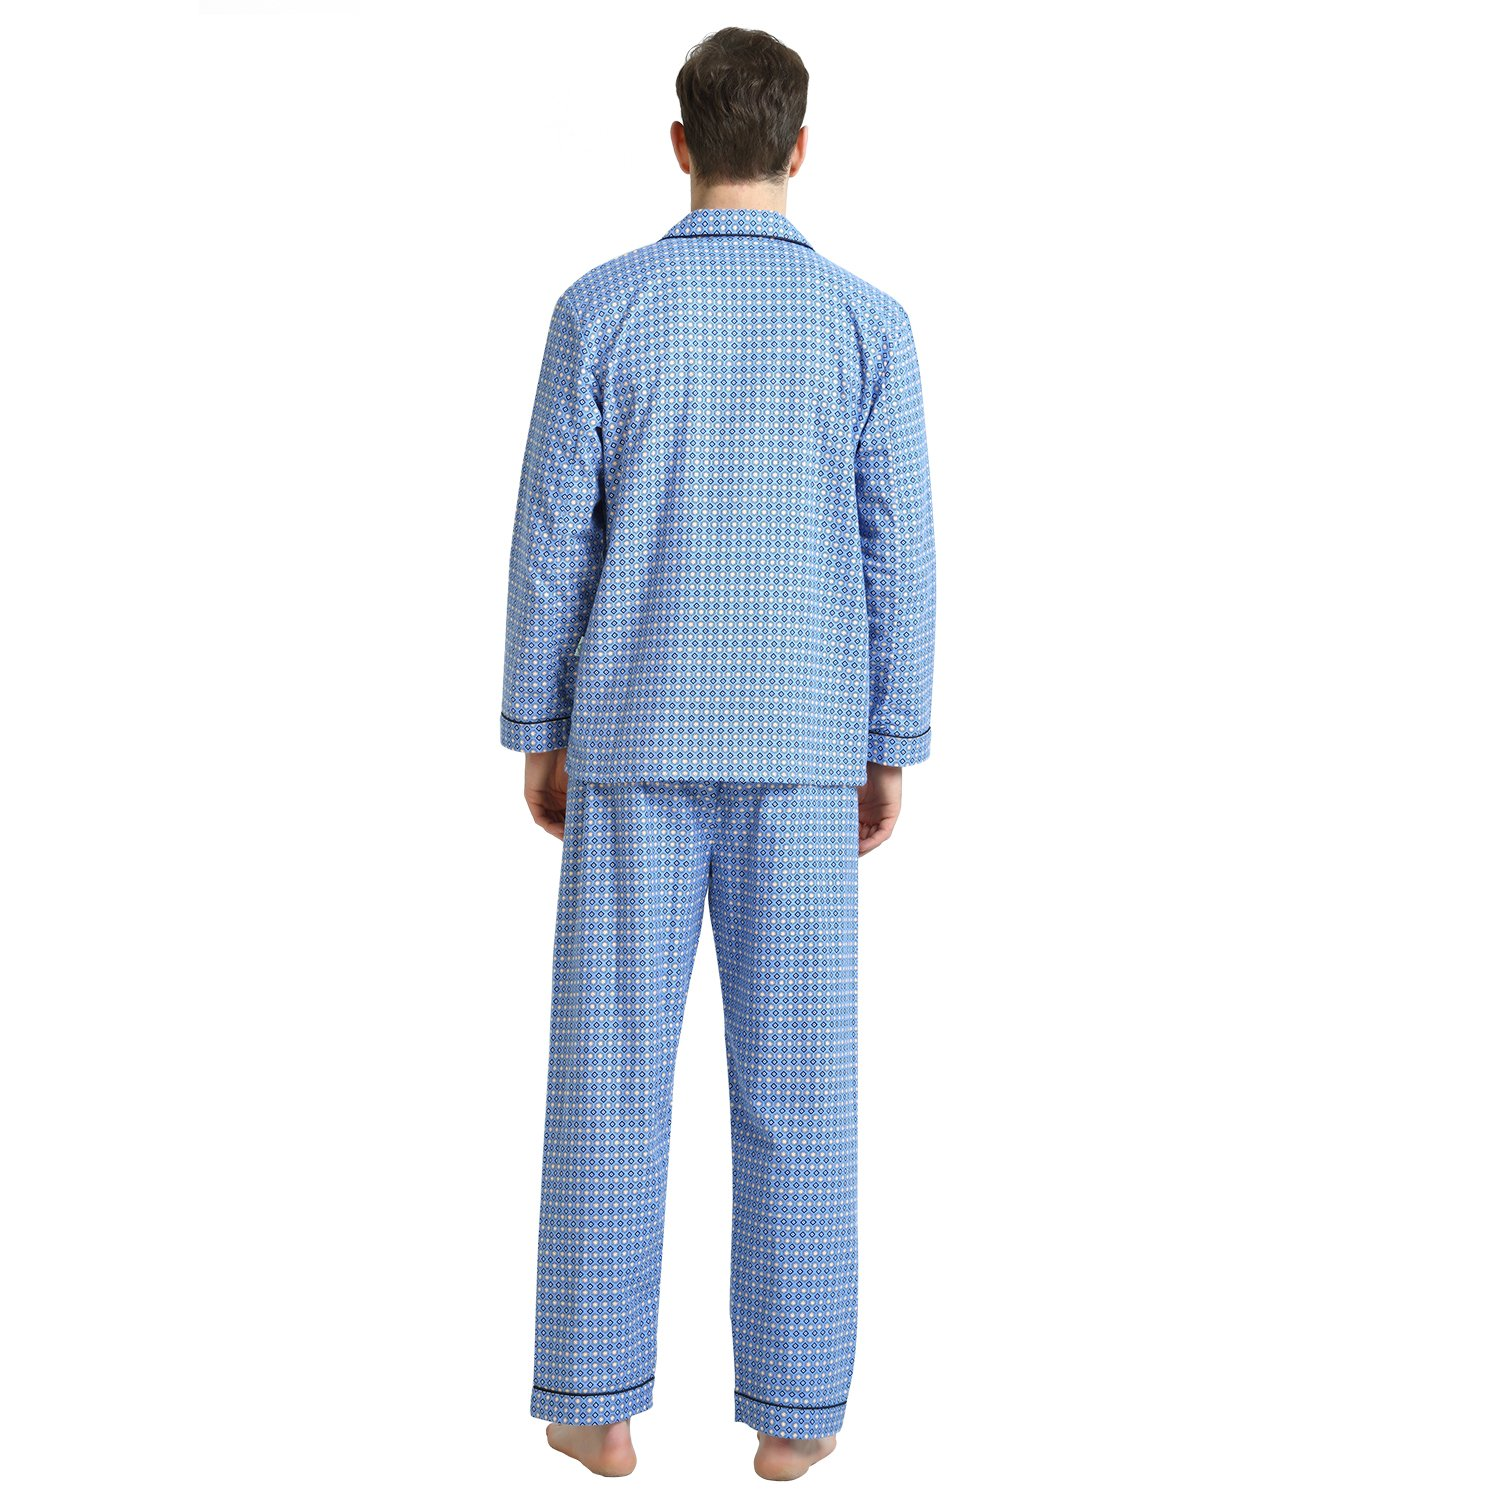 Cotton Sleepwear/Loungewear Sets for Men,100% Fleece Warm Pj Top and Bottom by GLOBAL (Image #3)